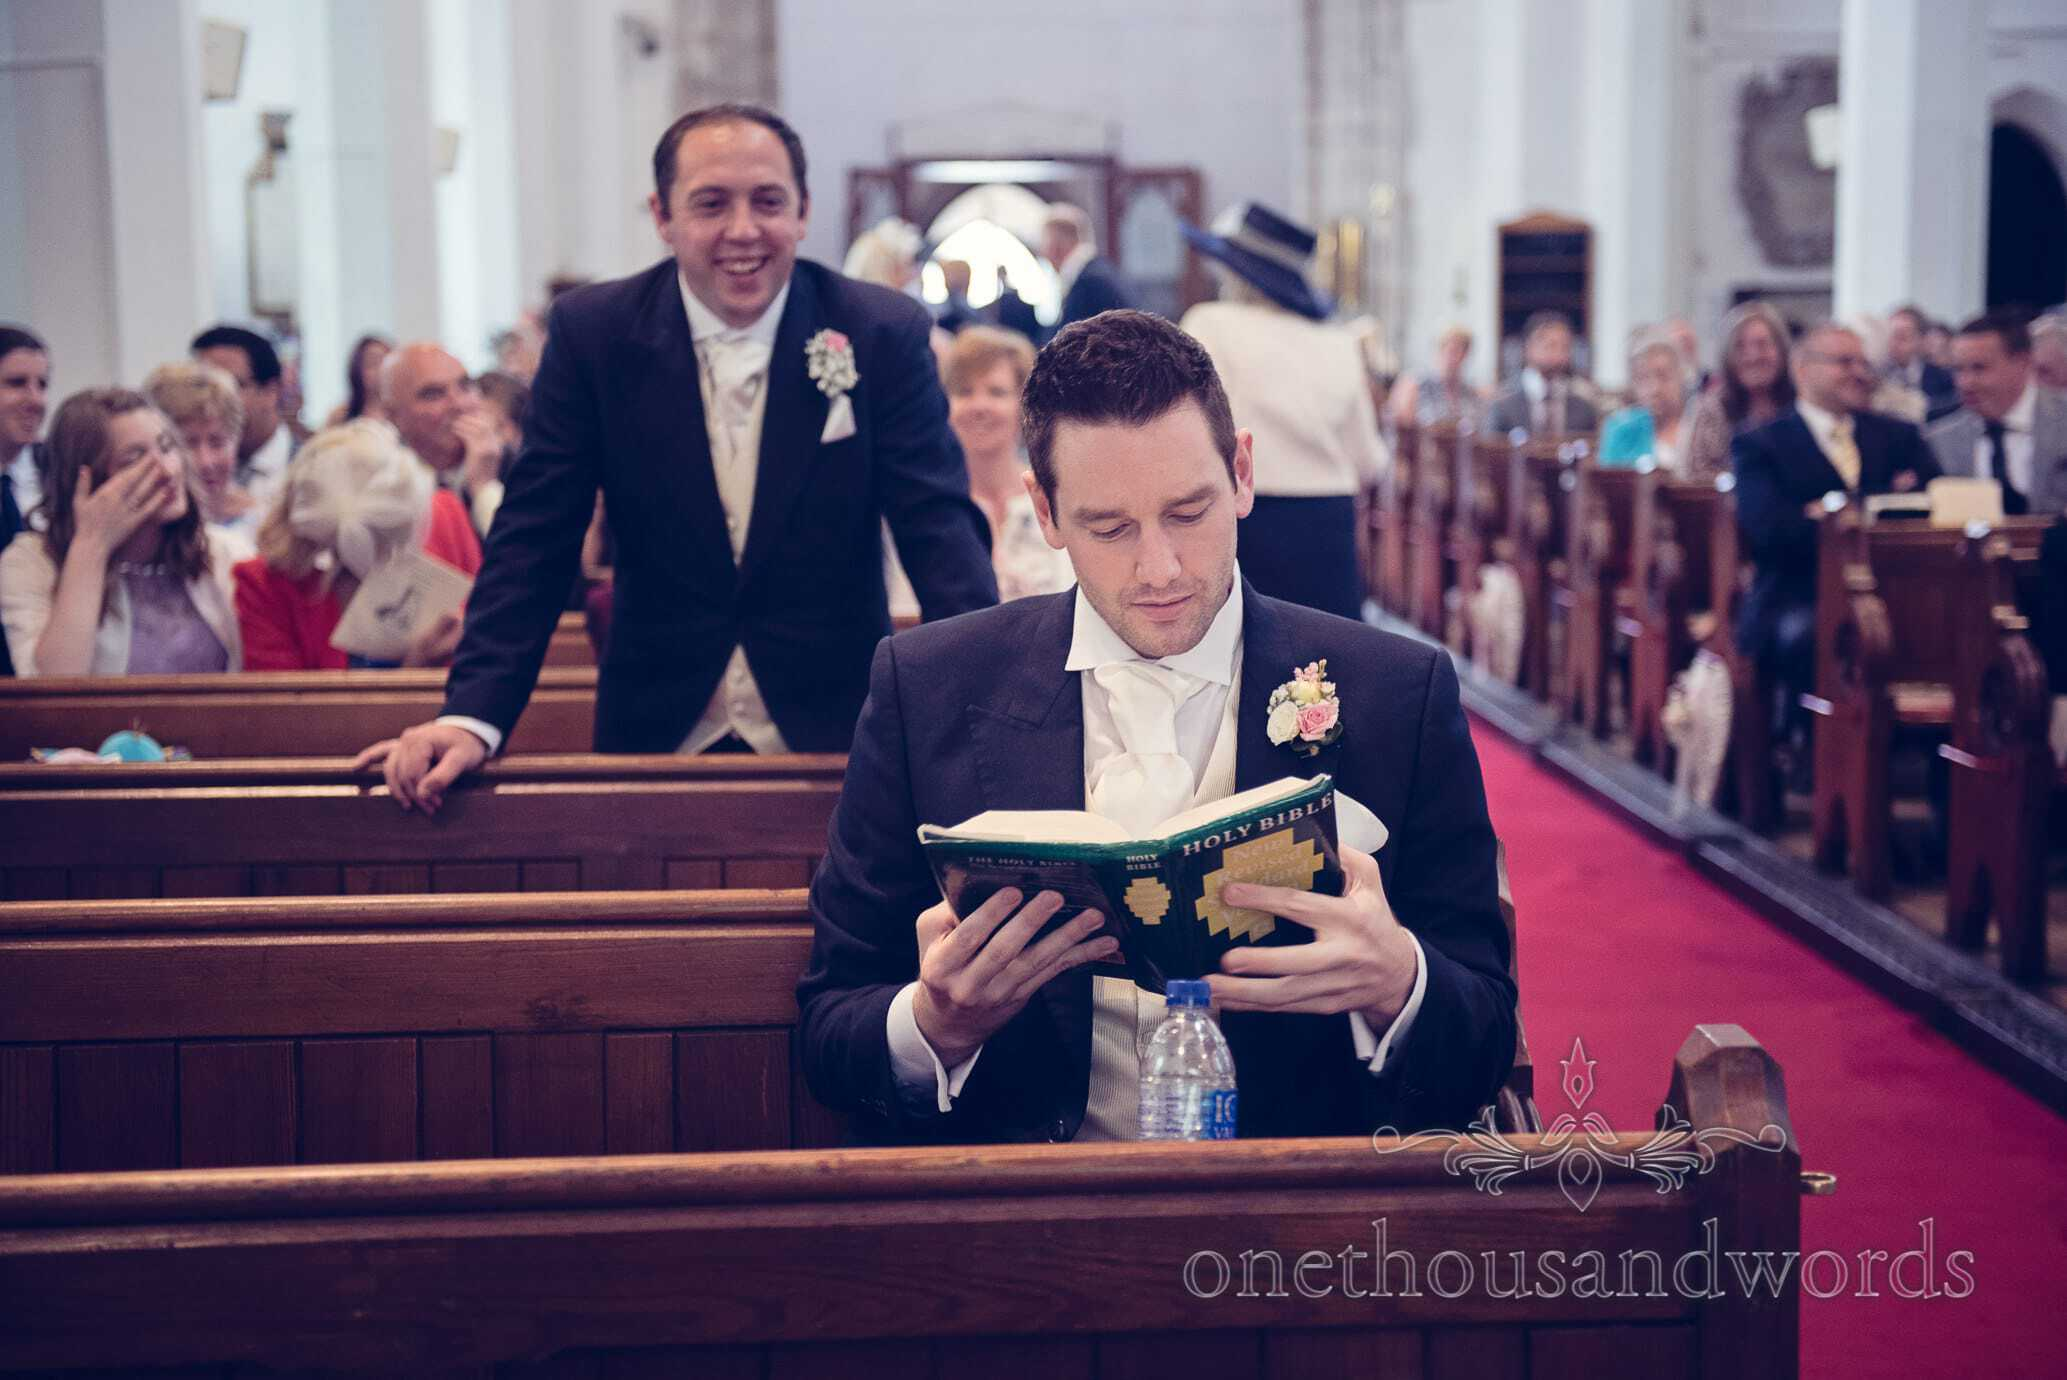 Groom reads Holy Bible before church wedding ceremony in Dorset Church